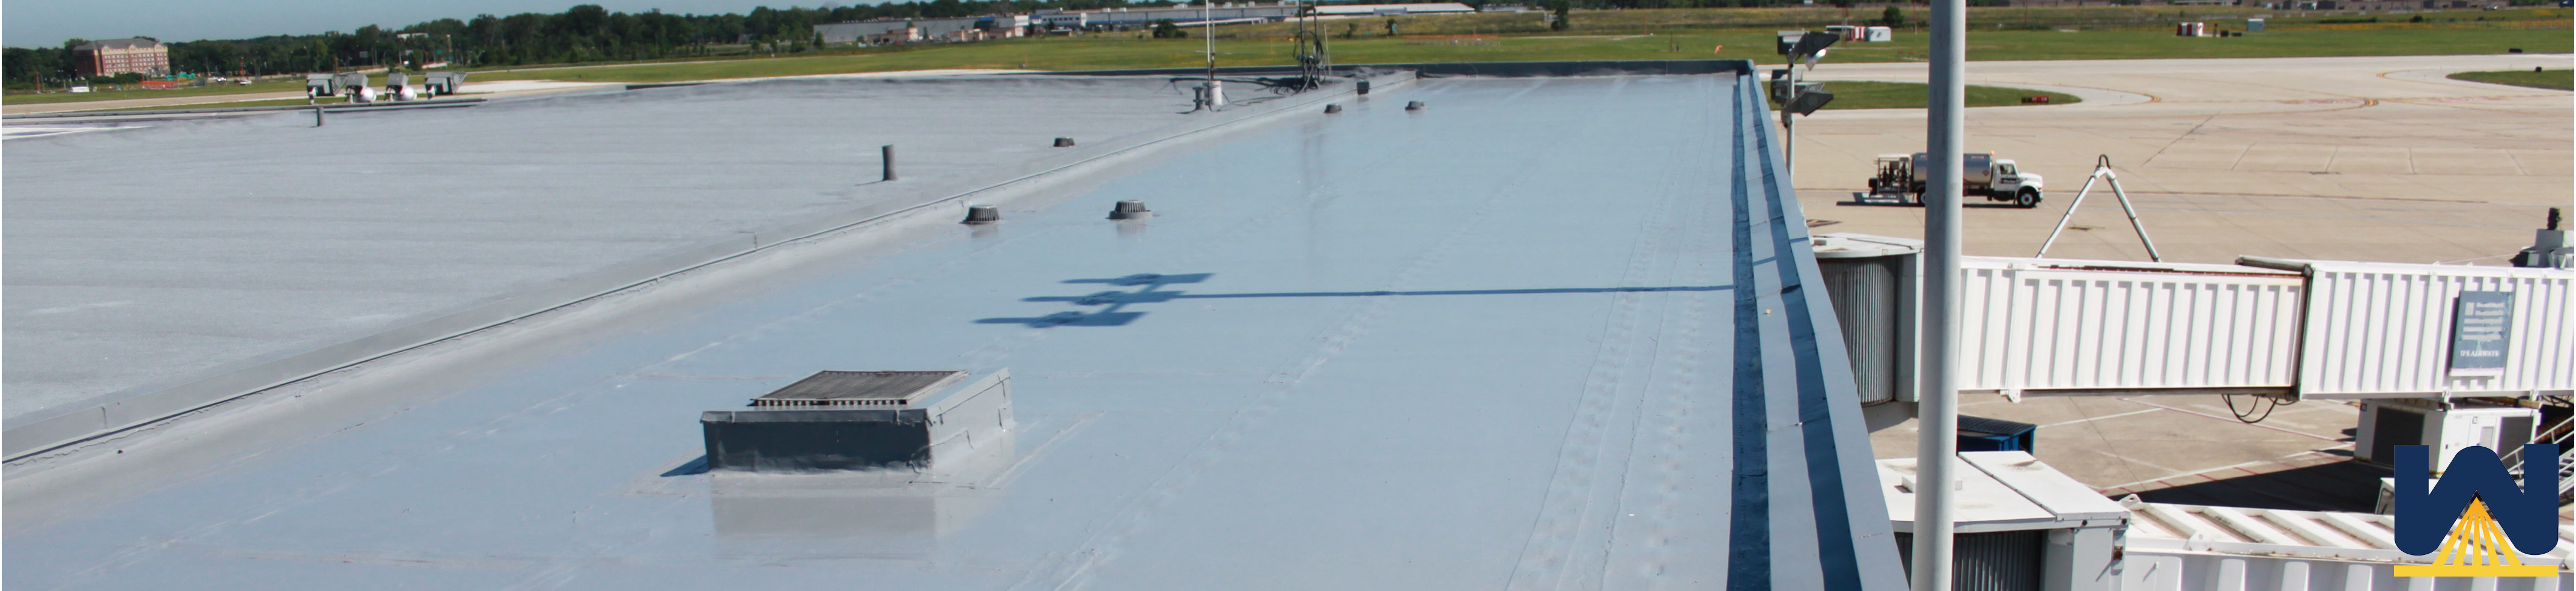 Roof Silicone Amp Silicone Roof Coating On A South Florida